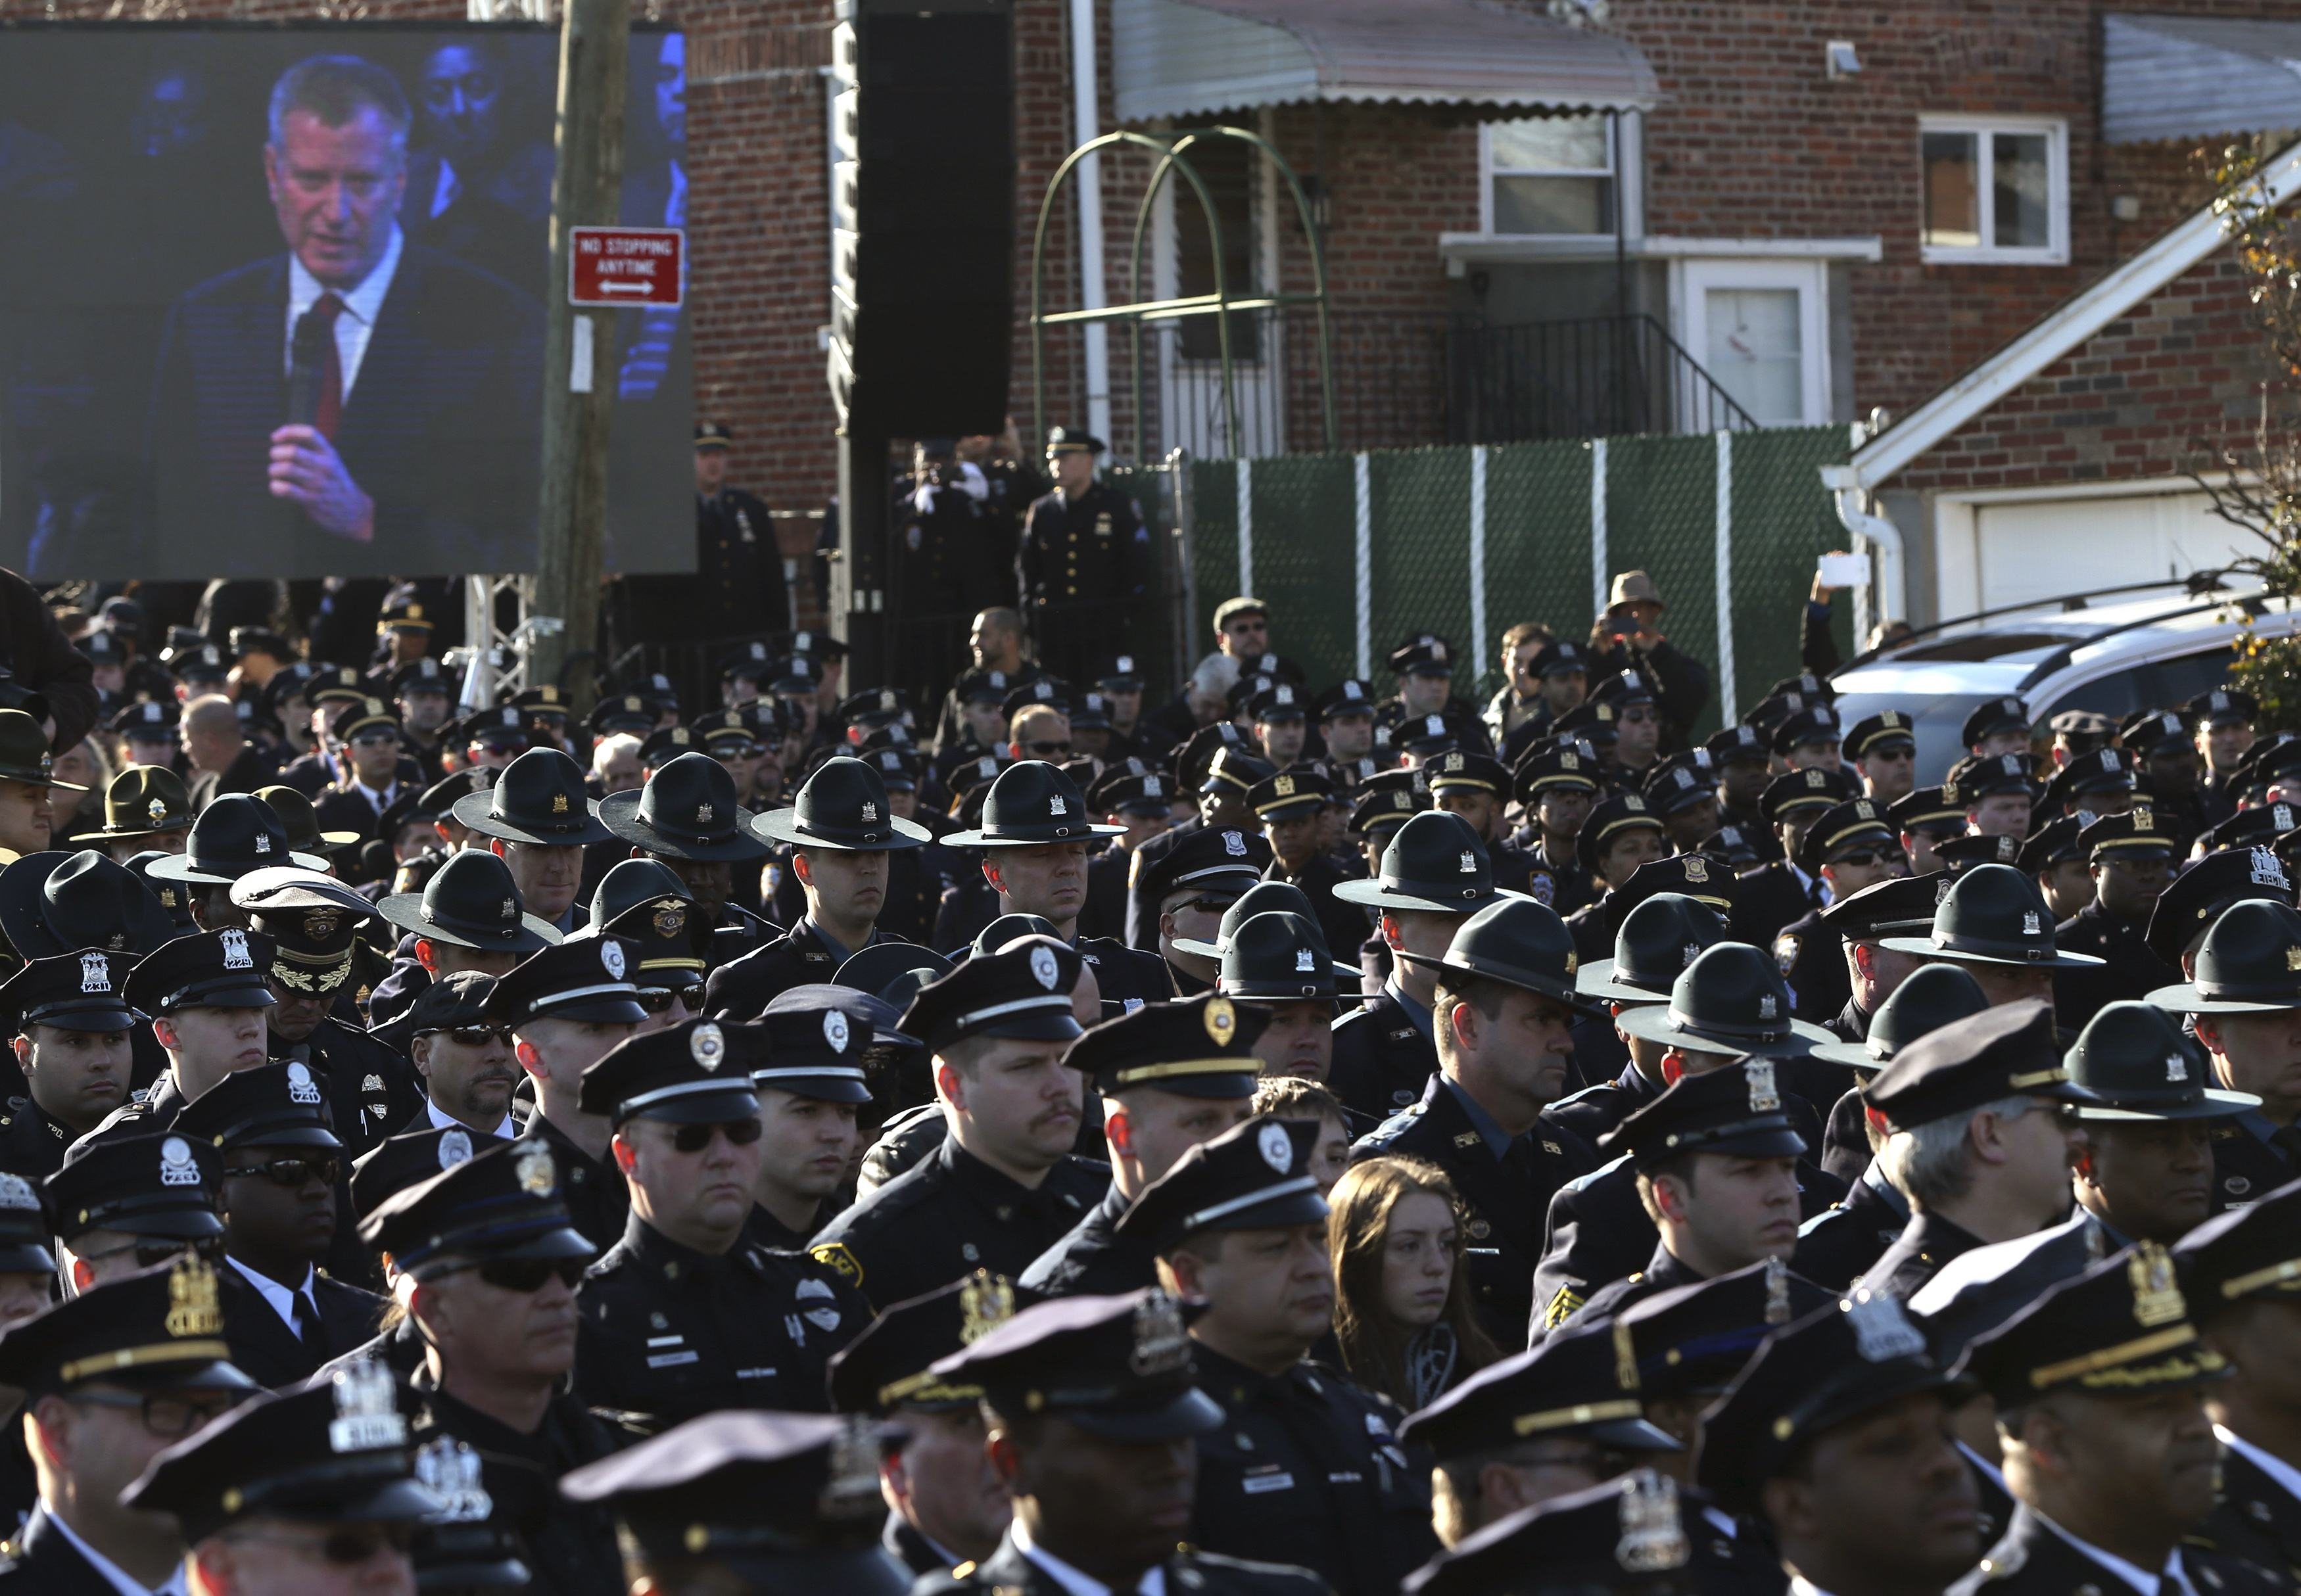 Law enforcement officers turn their backs on a video monitor as New York City Mayor Bill de Blasio speaks during the funeral of slain New York Police Department (NYPD) officer Rafael Ramos near Christ Tabernacle Church in the Queens borough of New York December 27, 2014. Tens of thousands of police and other mourners filled a New York City church and surrounding streets for the funeral on Saturday of one of two police officers ambushed by a gunman who said he was avenging the killing of unarmed black men by police. Singled out for their uniforms, the deaths of Rafael Ramos and his partner Wenjian Liu have become a rallying point for police and their supporters around the country, beleaguered by months of street rallies by protesters who say police practices are marked by racism.   REUTERS/Shannon Stapleton